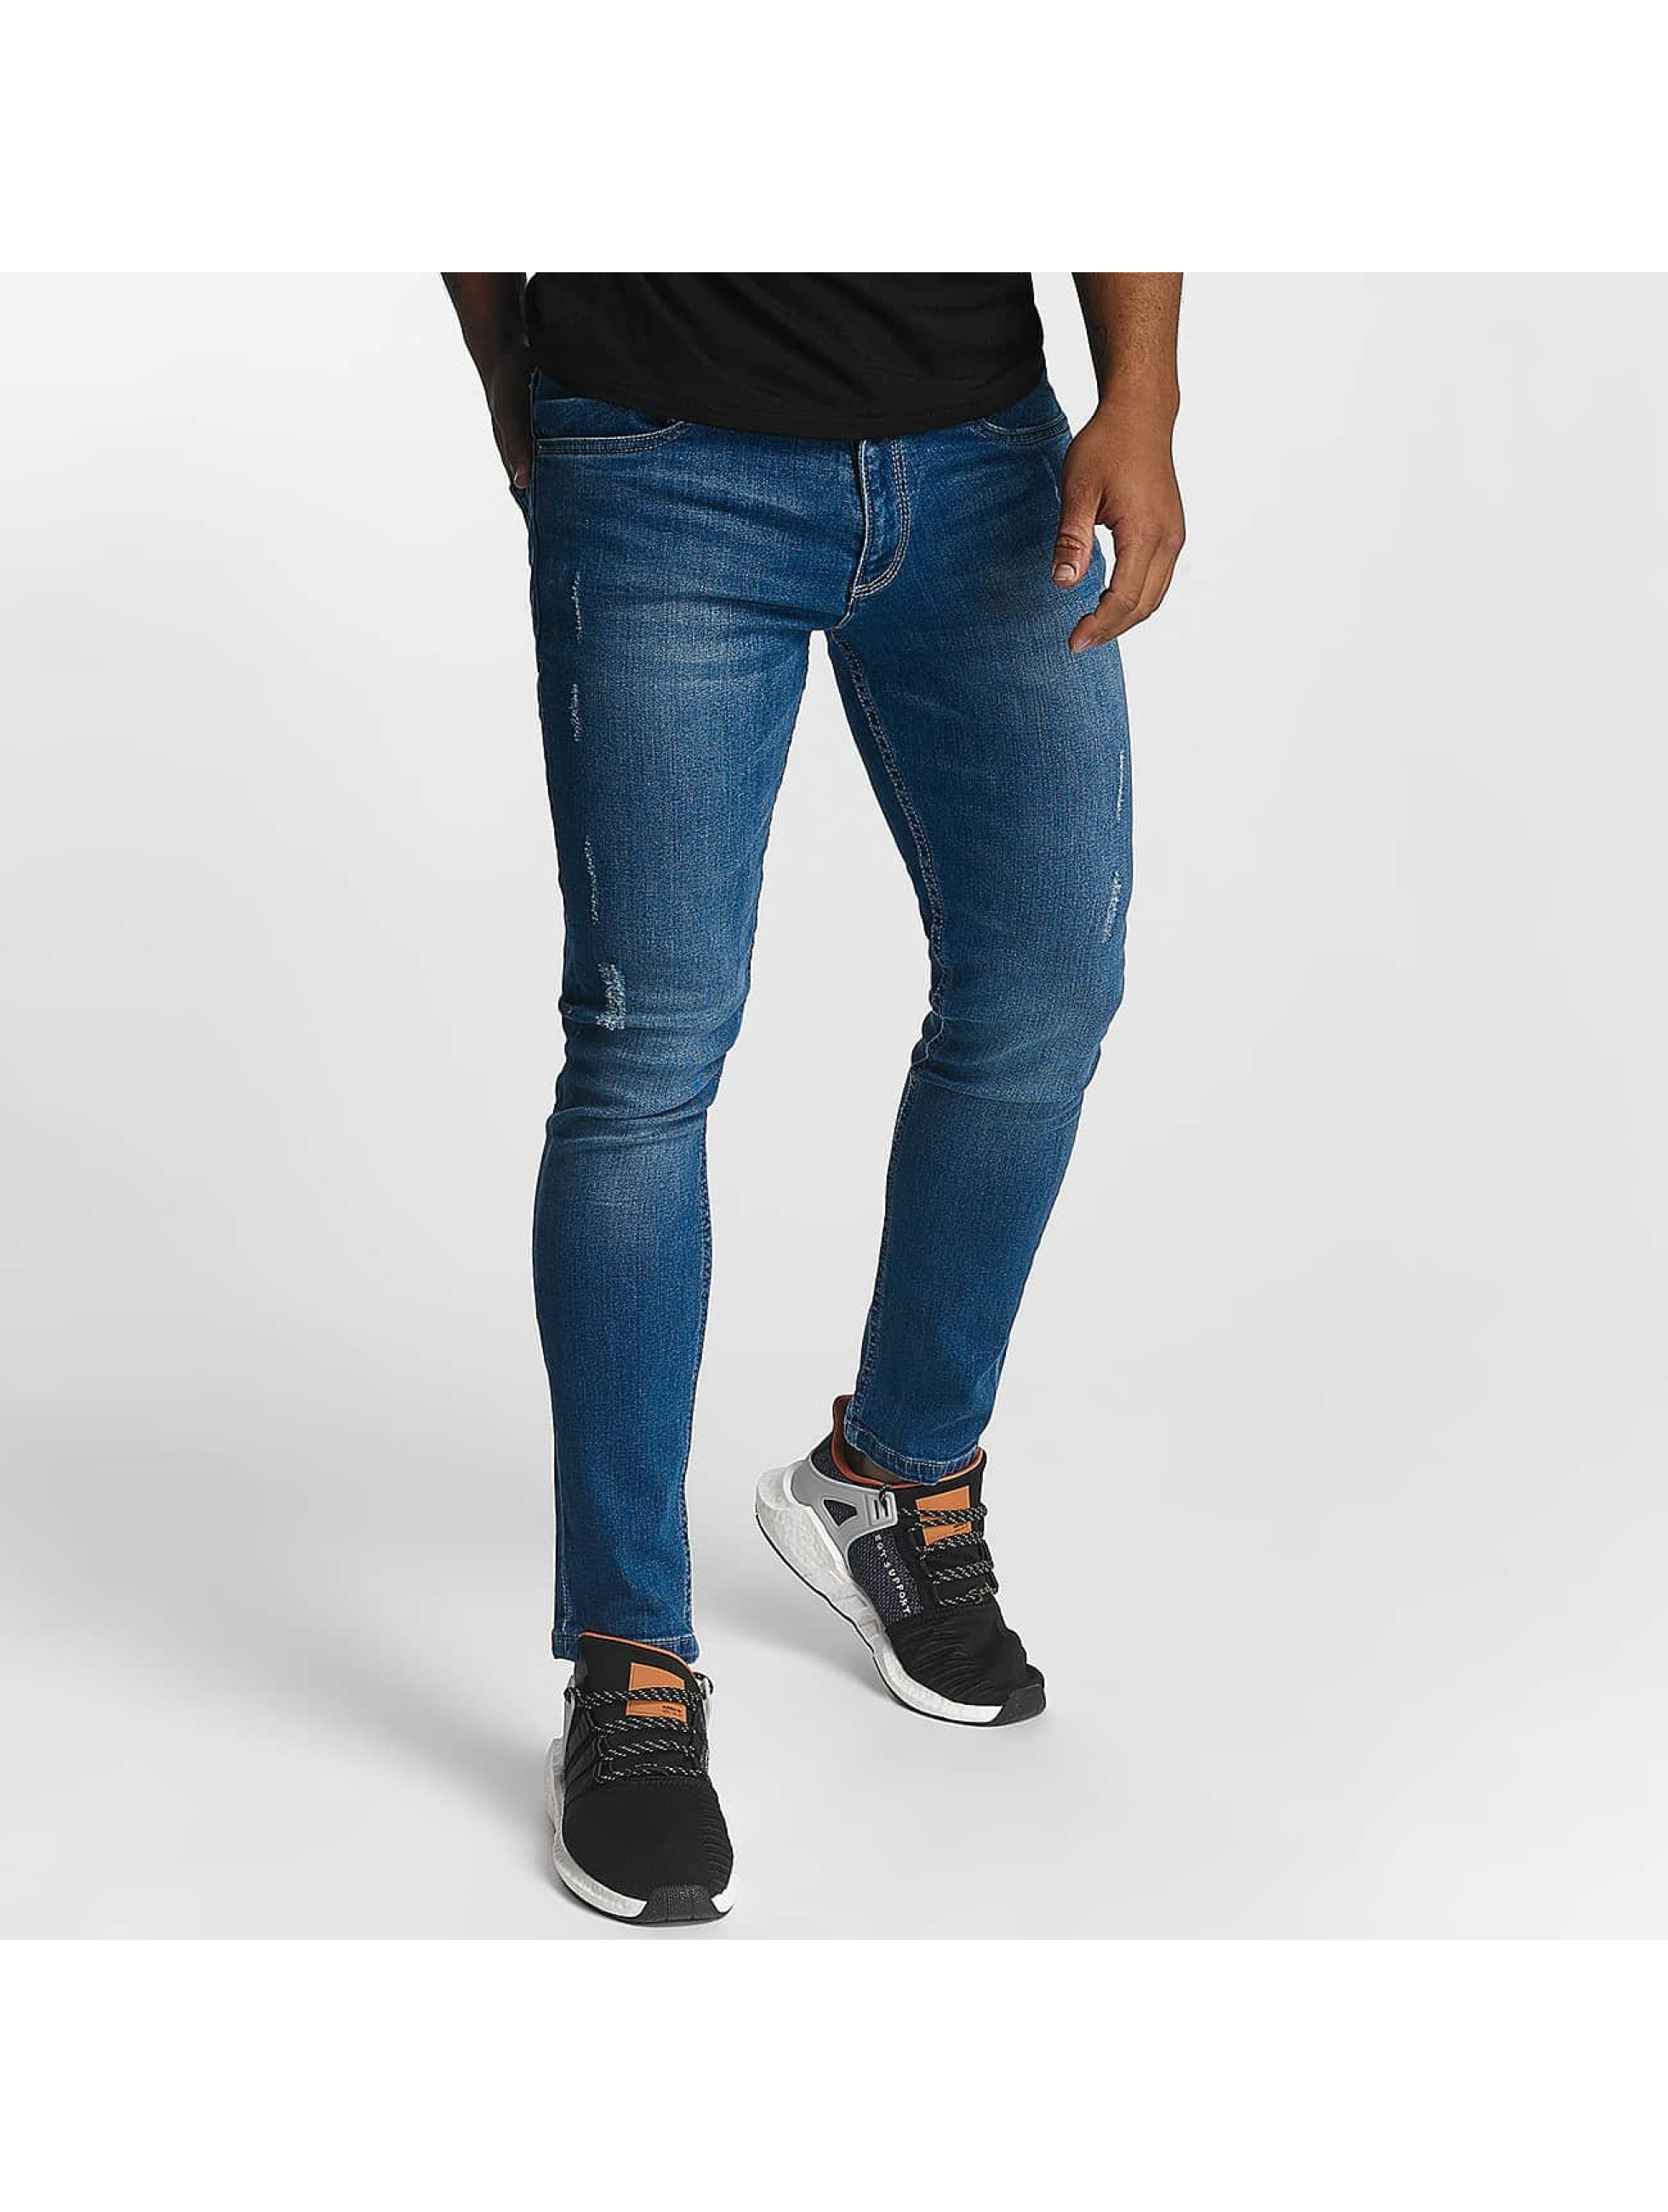 urban classics herren skinny jeans ripped in blau 305674. Black Bedroom Furniture Sets. Home Design Ideas